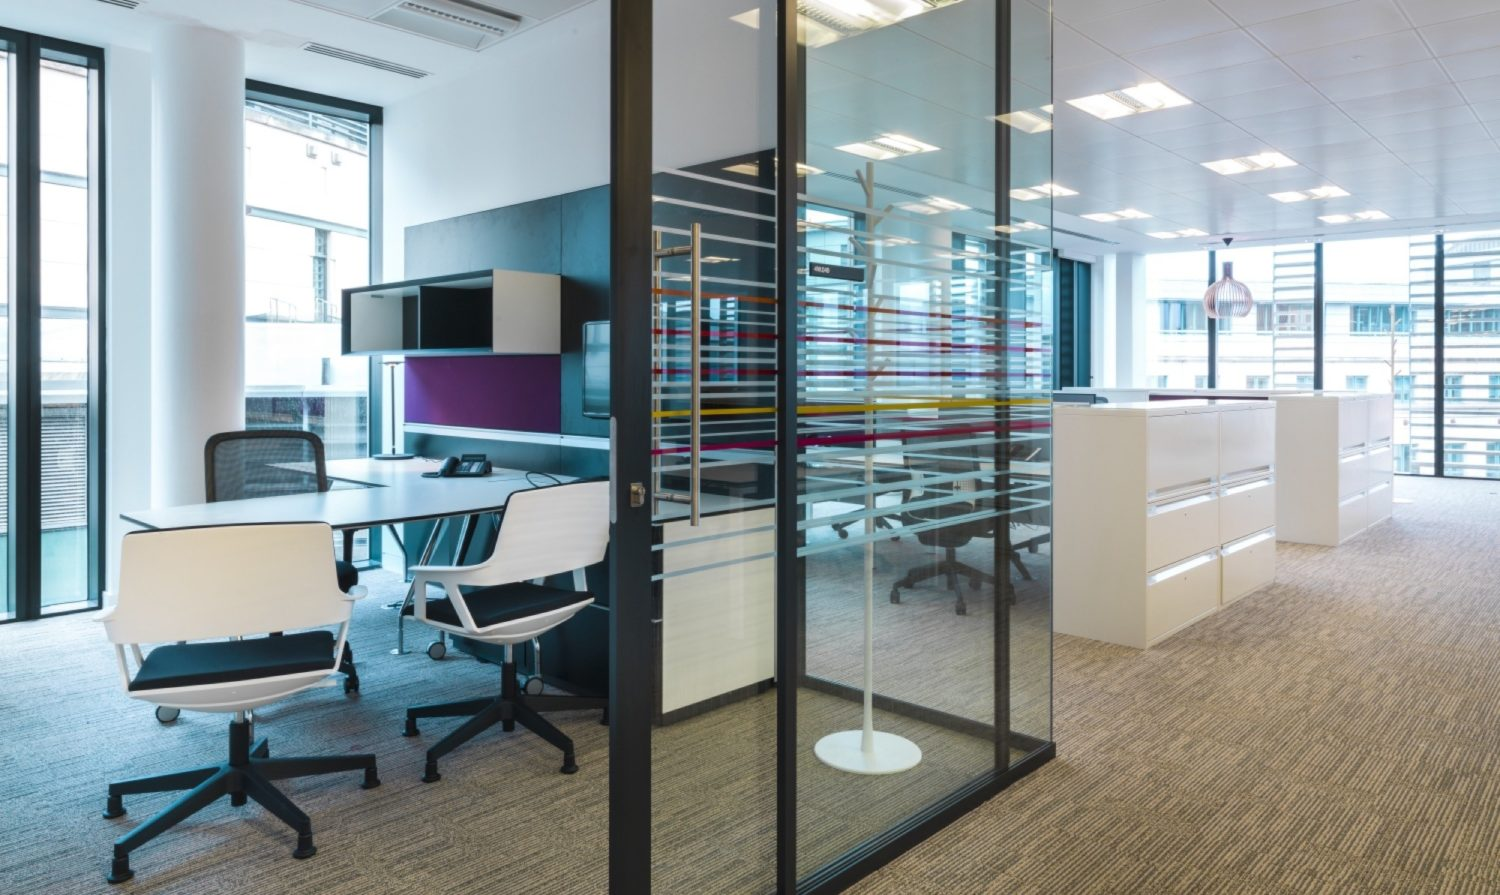 PwC office fit out for collaboration